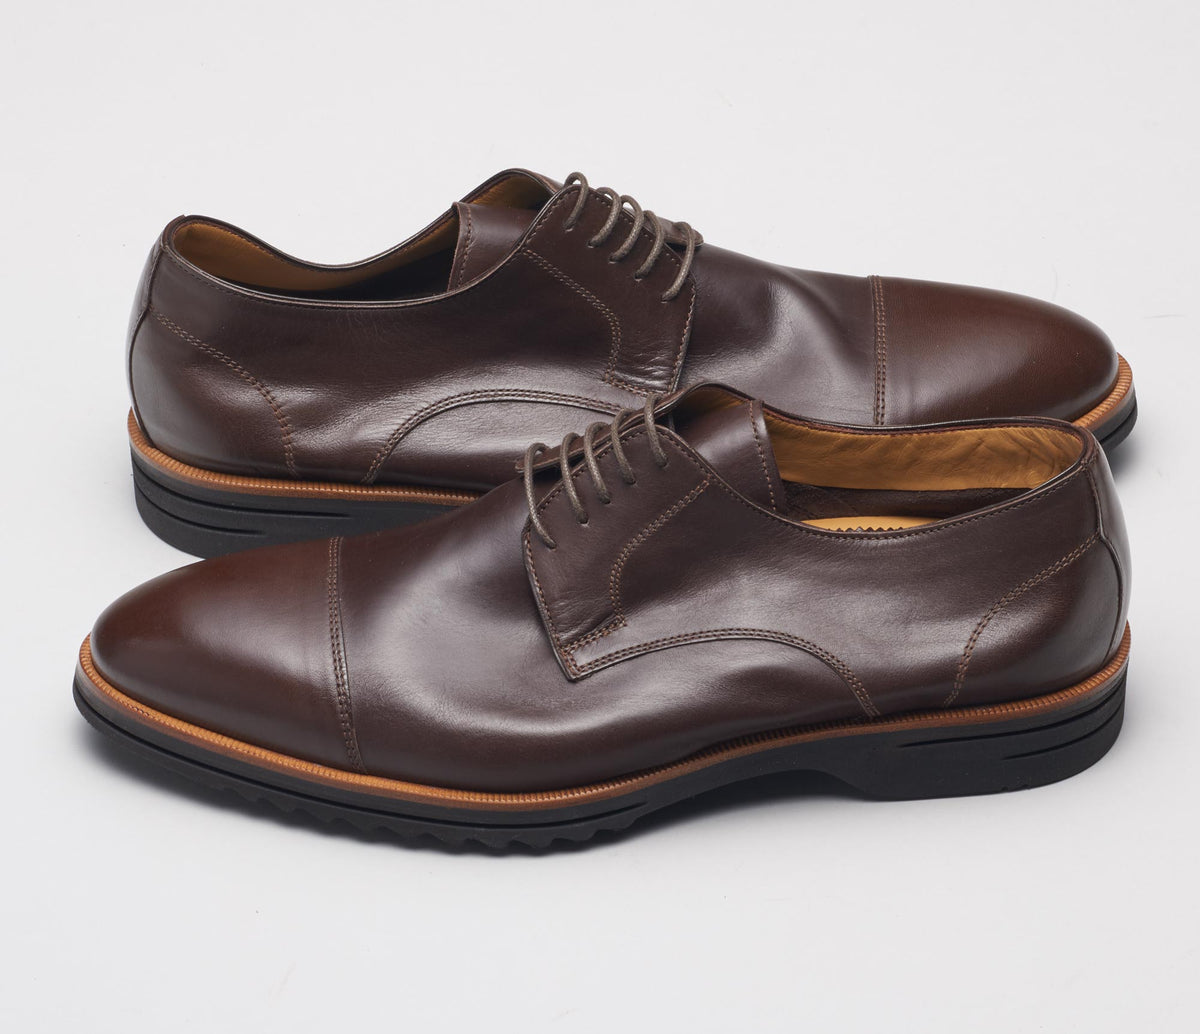 SC538 Clay'd Calf Bracken